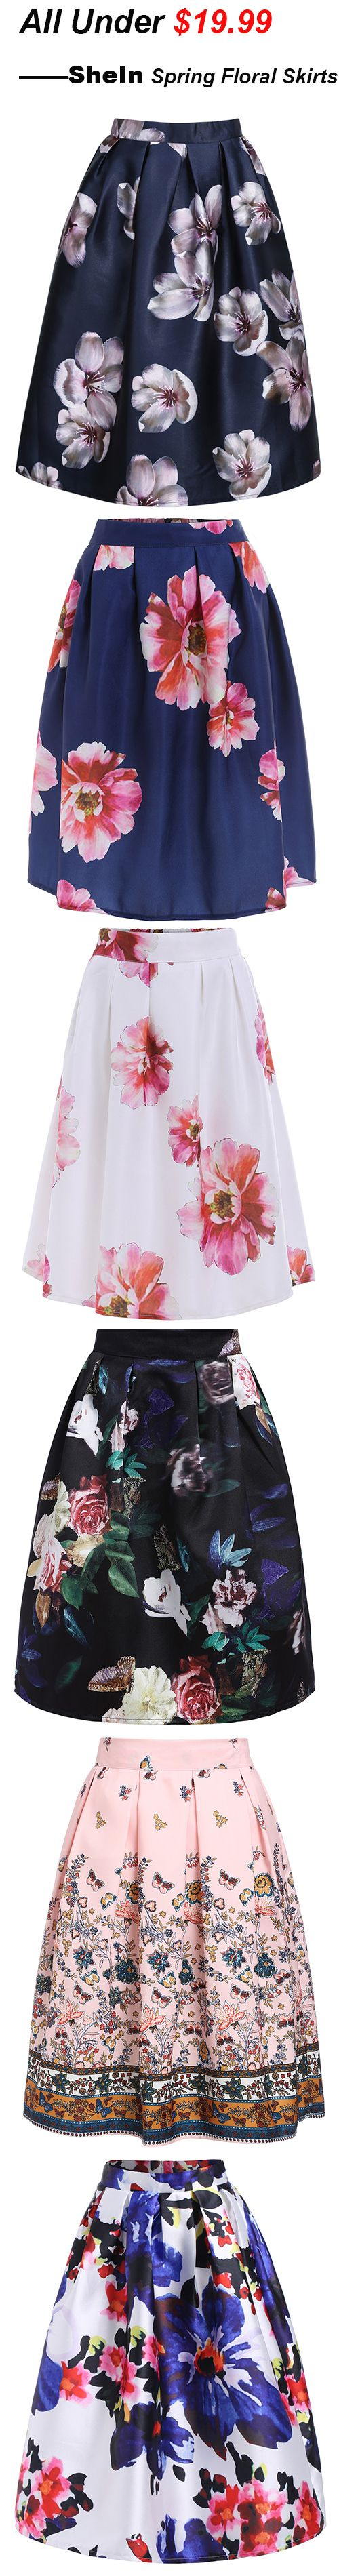 How to Wear with Full Skirts this Summer, Various kinds of Skirts from SheIn.com Check more details :)